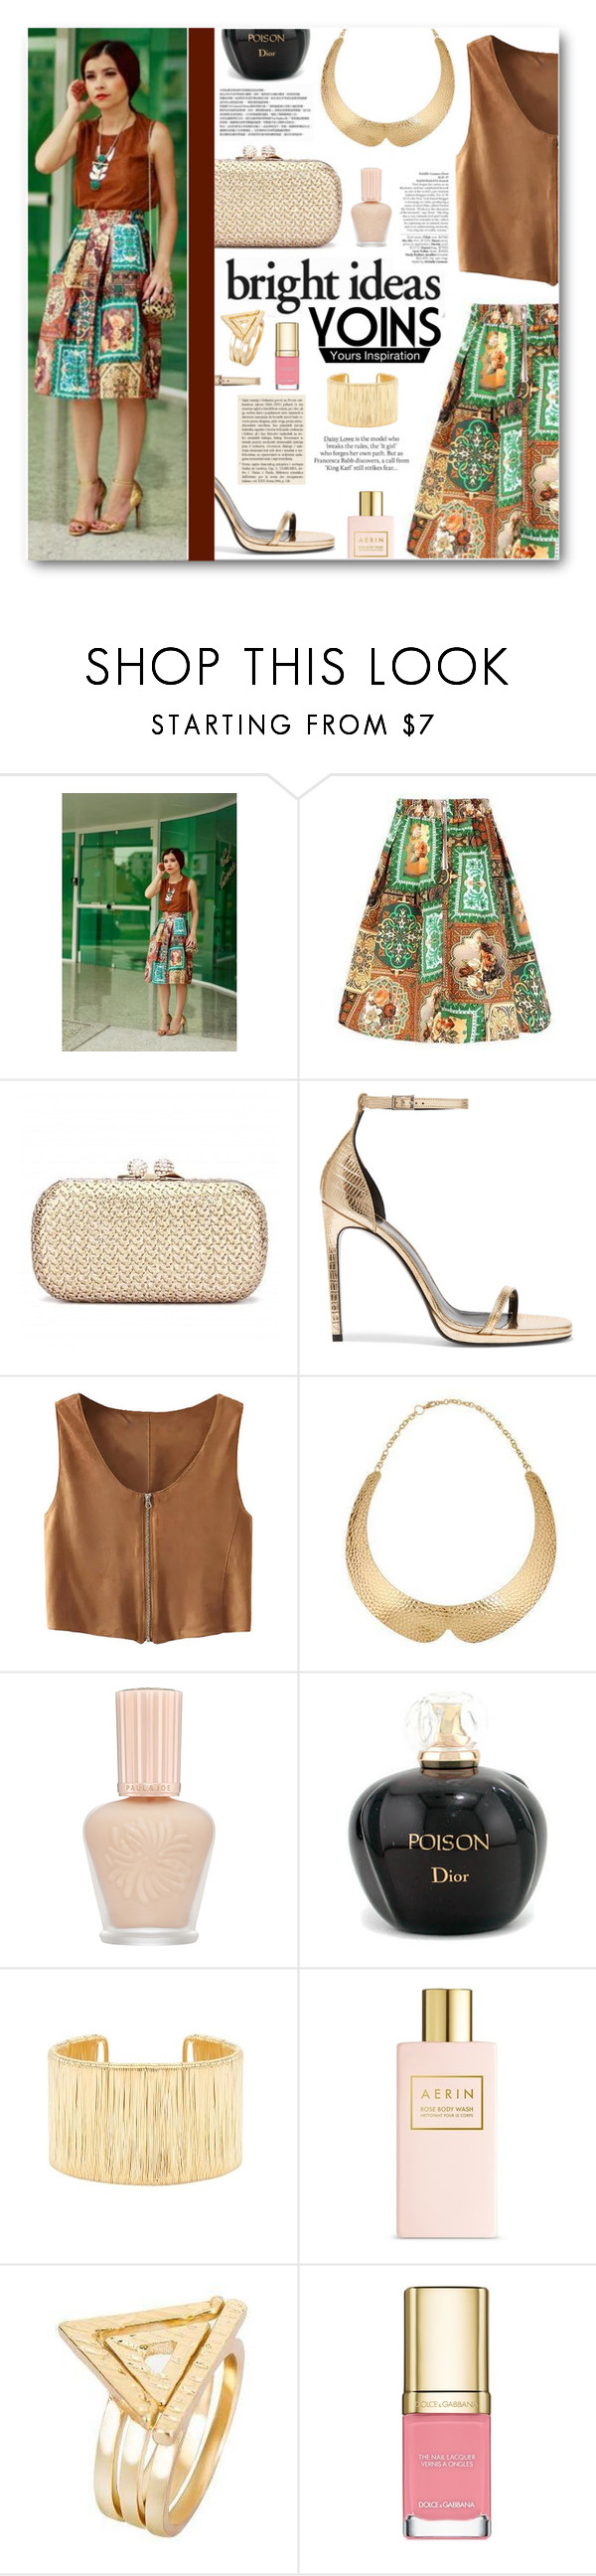 """Bright Ideas with Yoins"" by tasnime-ben ❤ liked on Polyvore featuring Yves Saint Laurent, Avenue, Paul & Joe, Christian Dior, Estée Lauder, ASOS, Dolce&Gabbana and yoins"